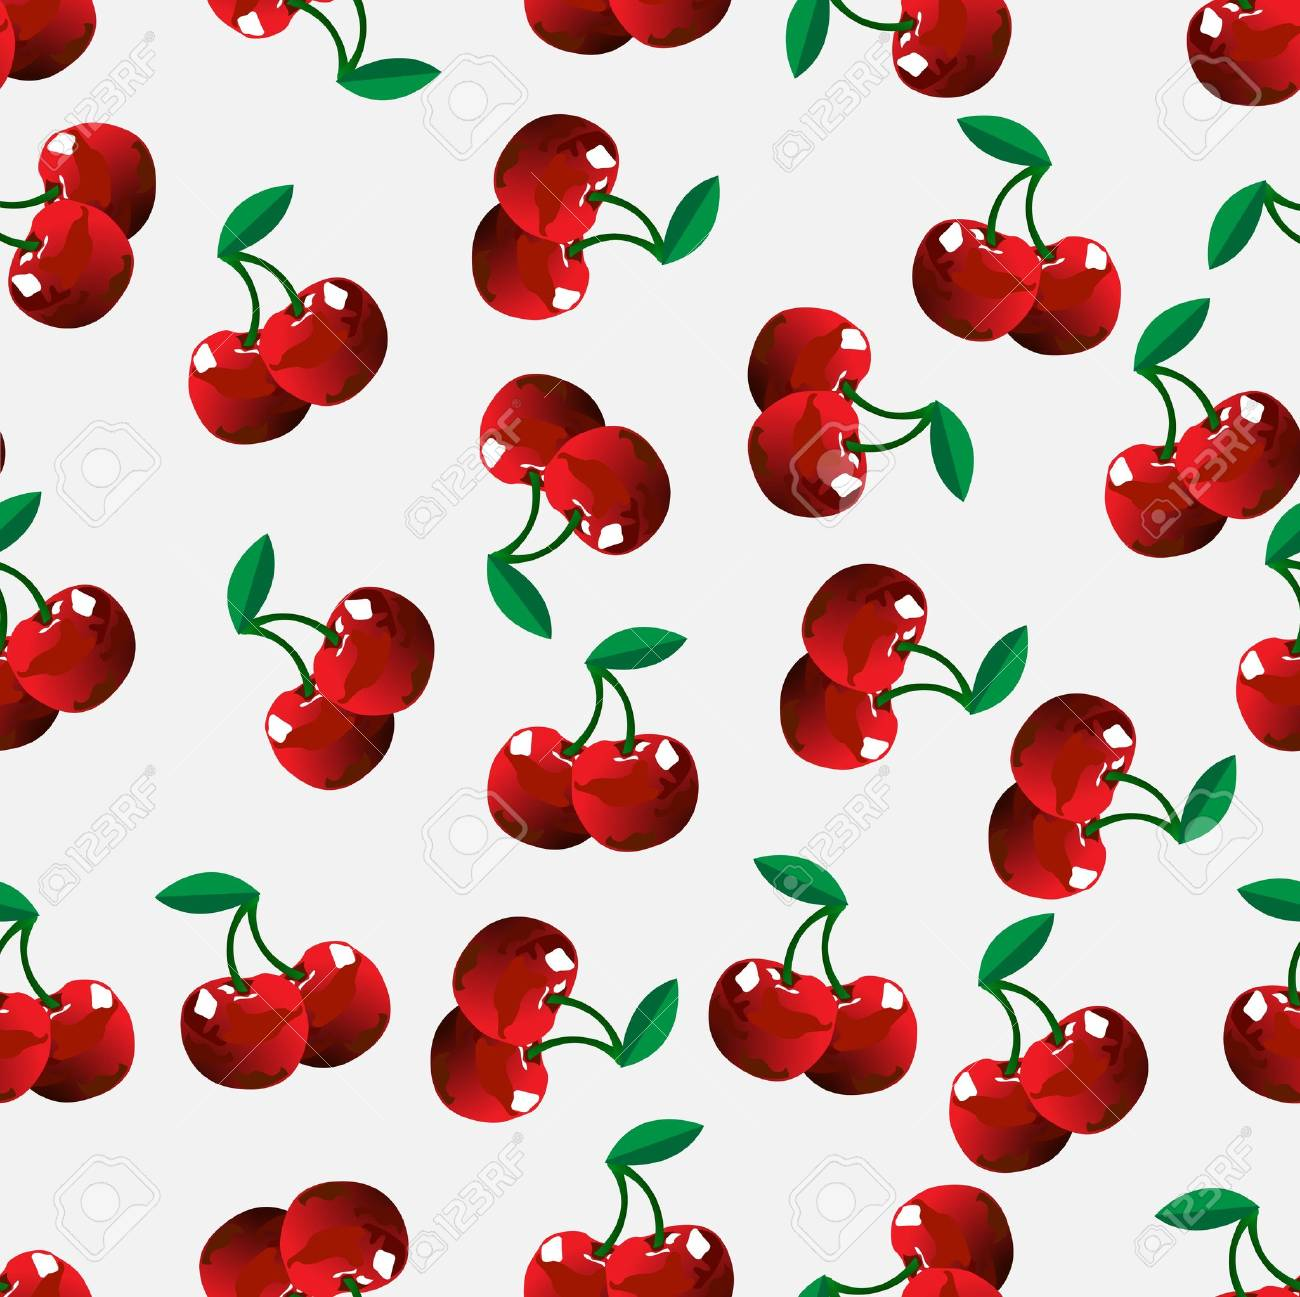 Cute Cherries Background Seamless Cherry Background